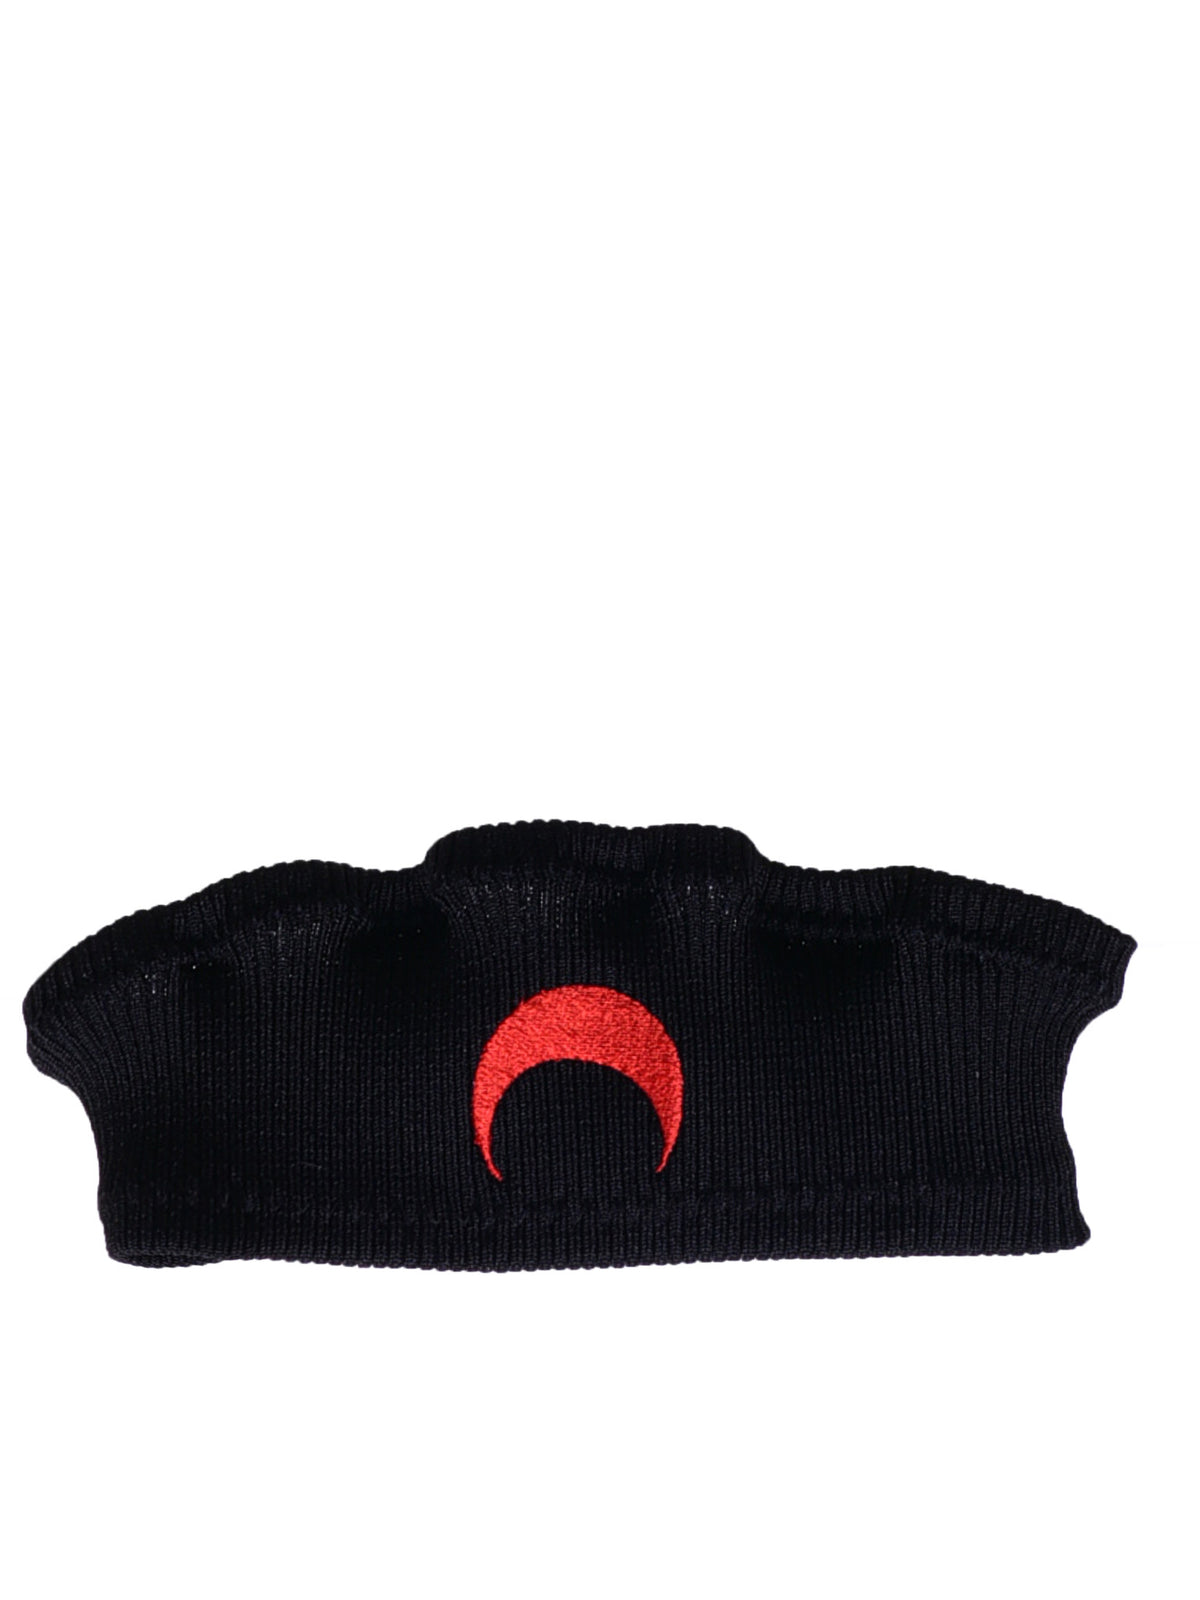 'Crescent Moon' Headband (BLACK-BAND-RED-MOON)